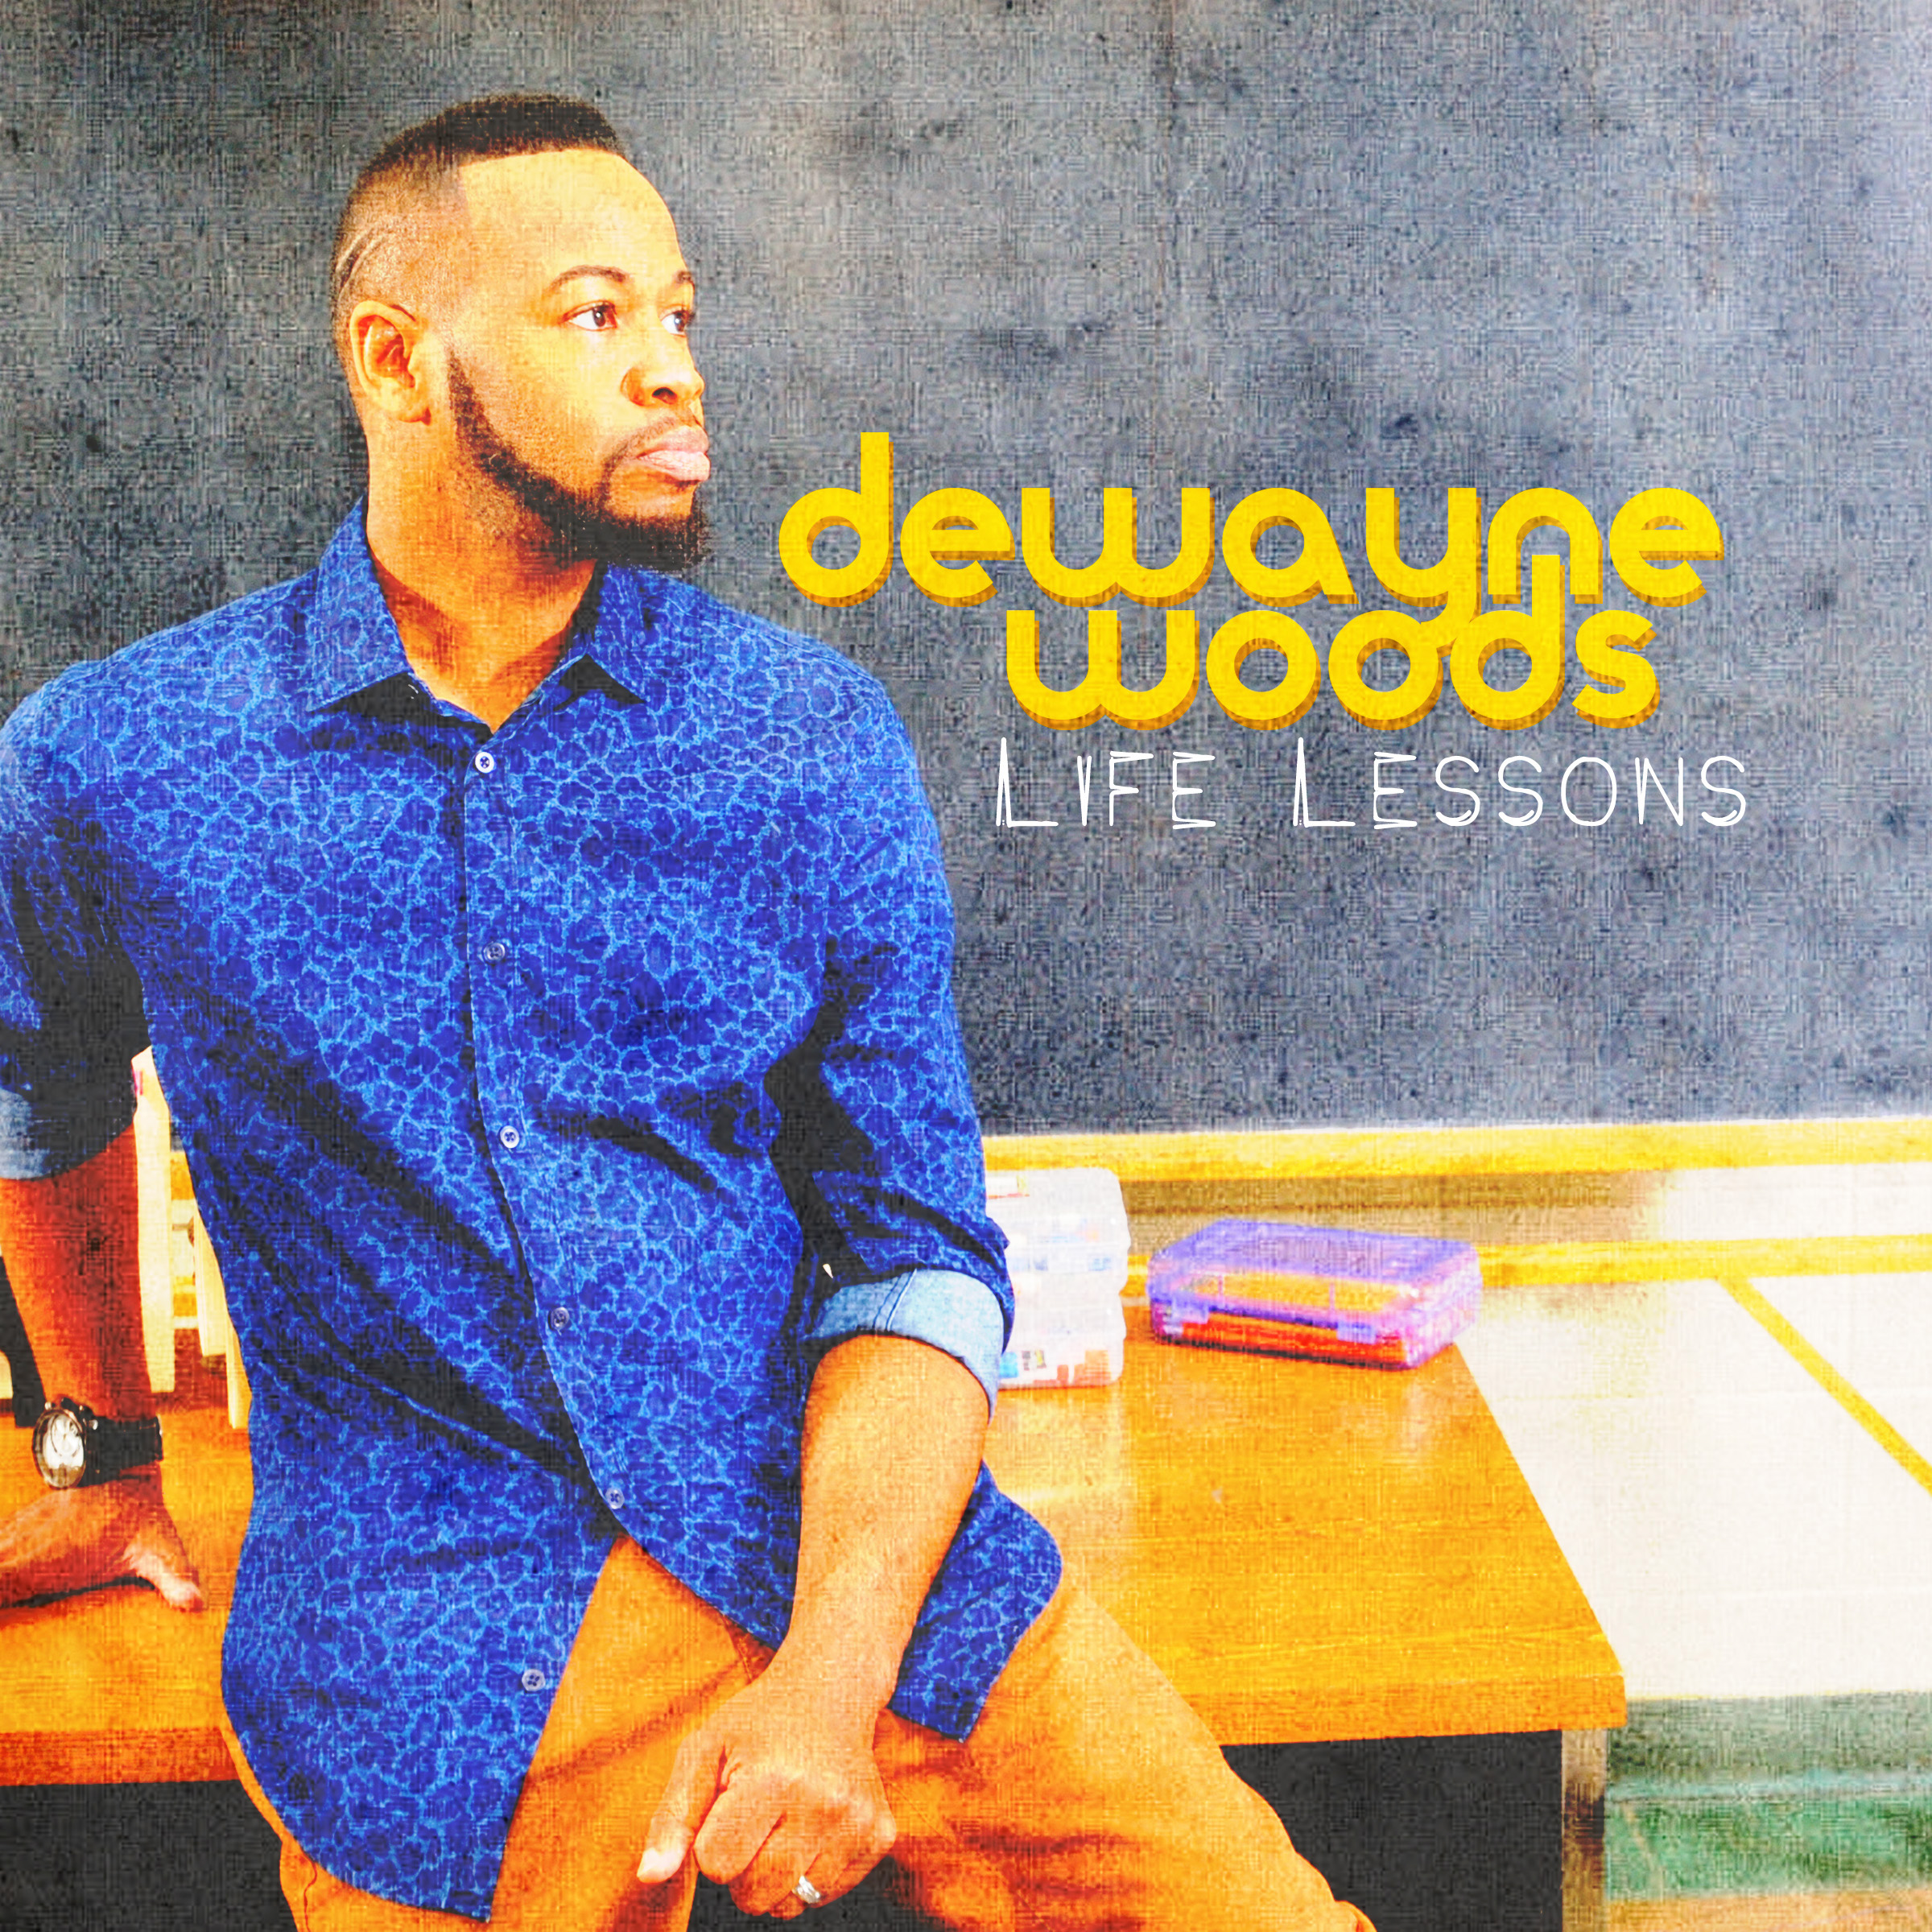 """Friend of Mine""    ""Sometimes""    ""Worryin' Never Helped""    ""Relyin' ""    ""With You""   Estee Bullock wrote and produced multiple songs for Gospel singer DeWayne Woods  Life Lessons  project along with additional co-writers and co-producers.  ""Friend of Mine"" was a featured single. Released in 2015."